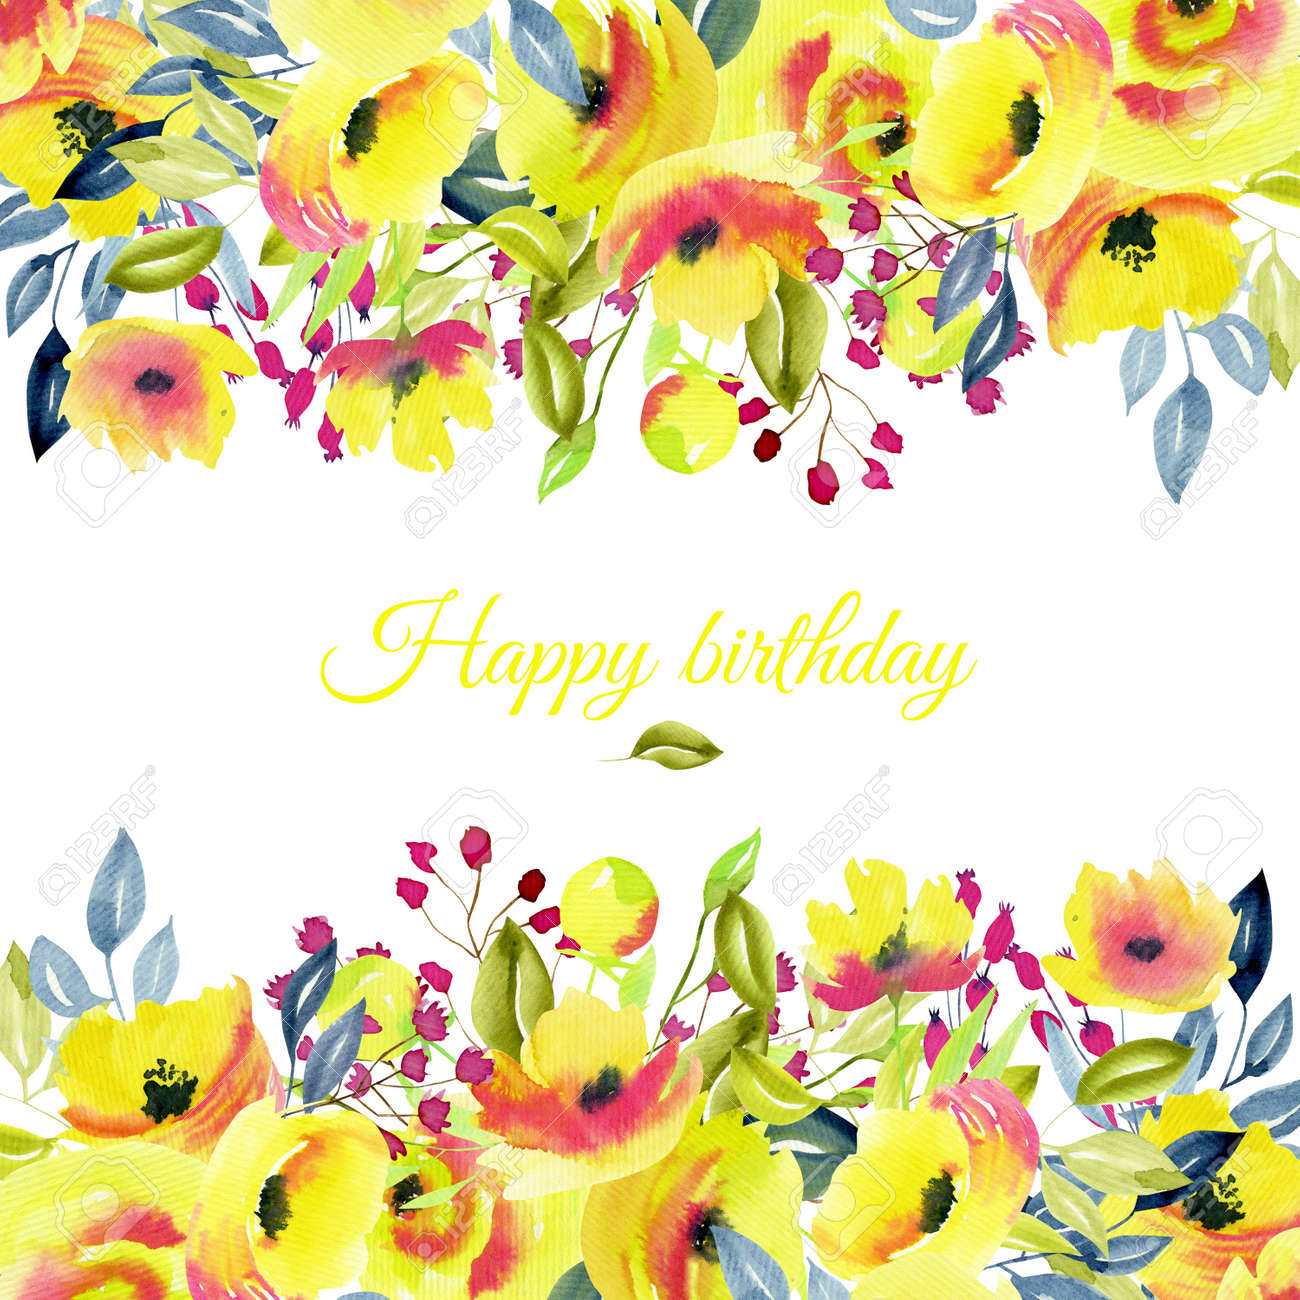 Card Template Floral Border With Yellow Roses And Branches Stock